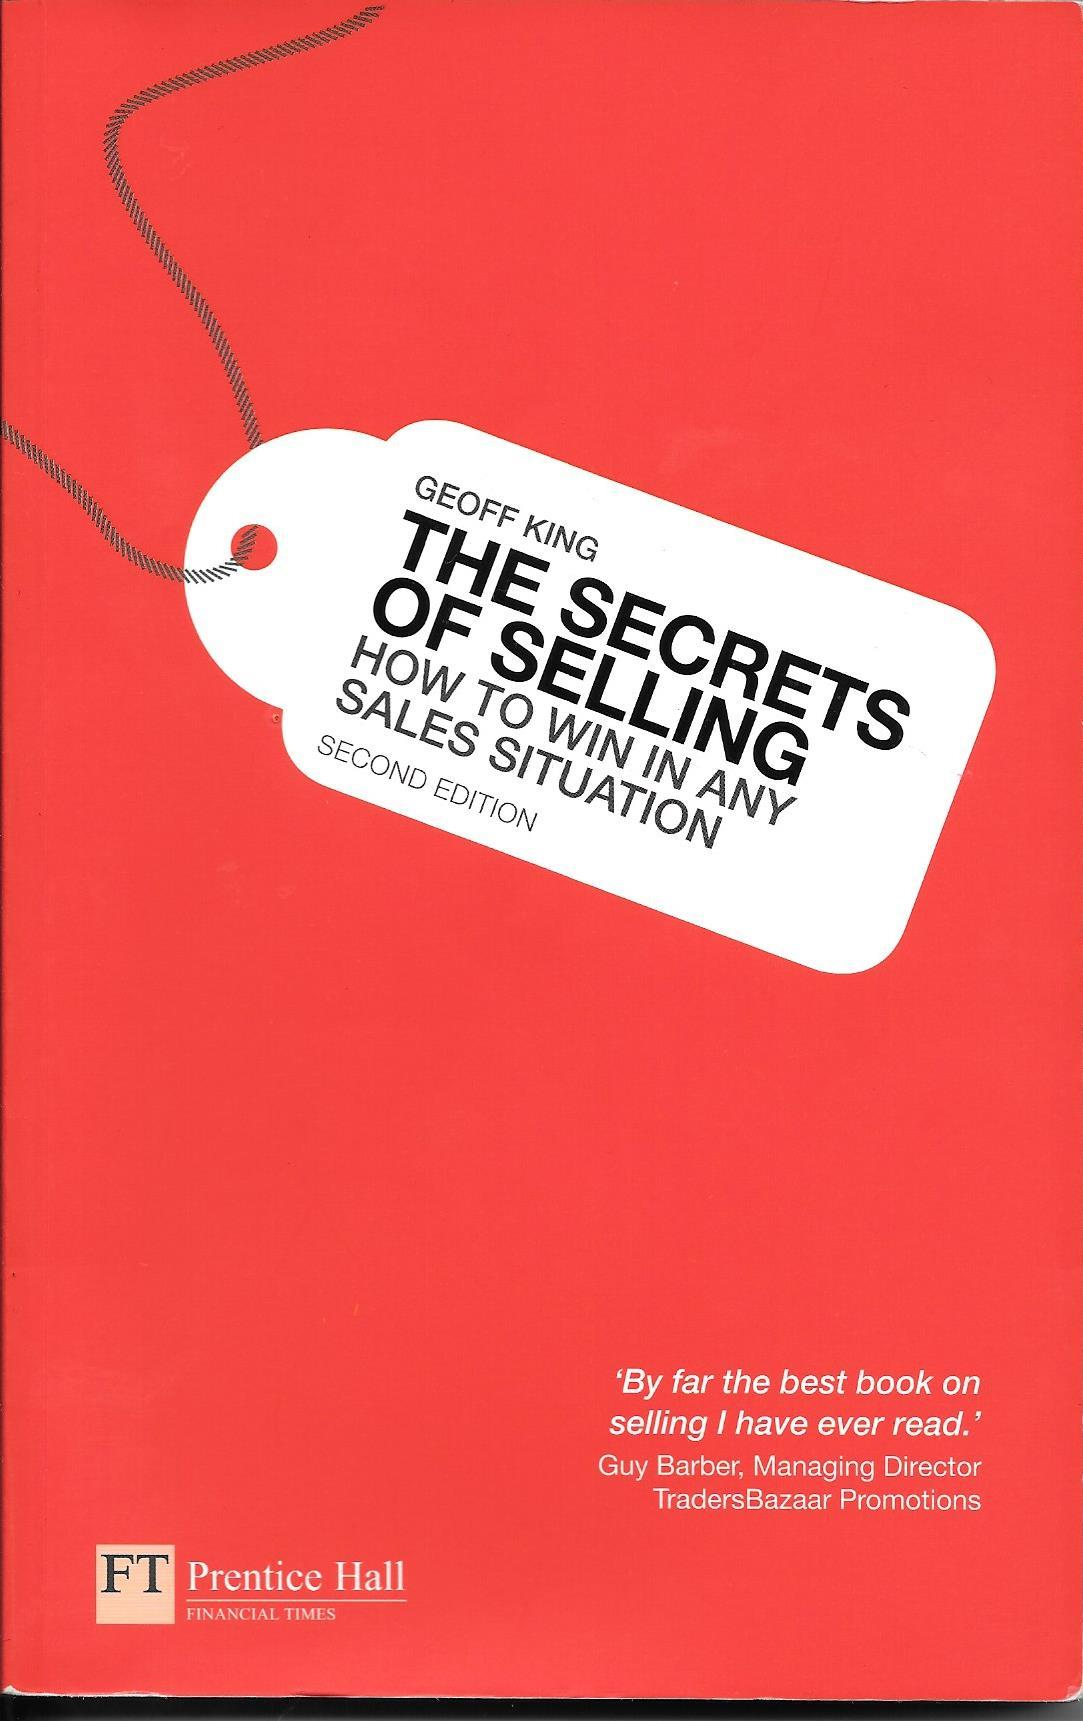 The secret of selling surgery stocking saleswoman 3